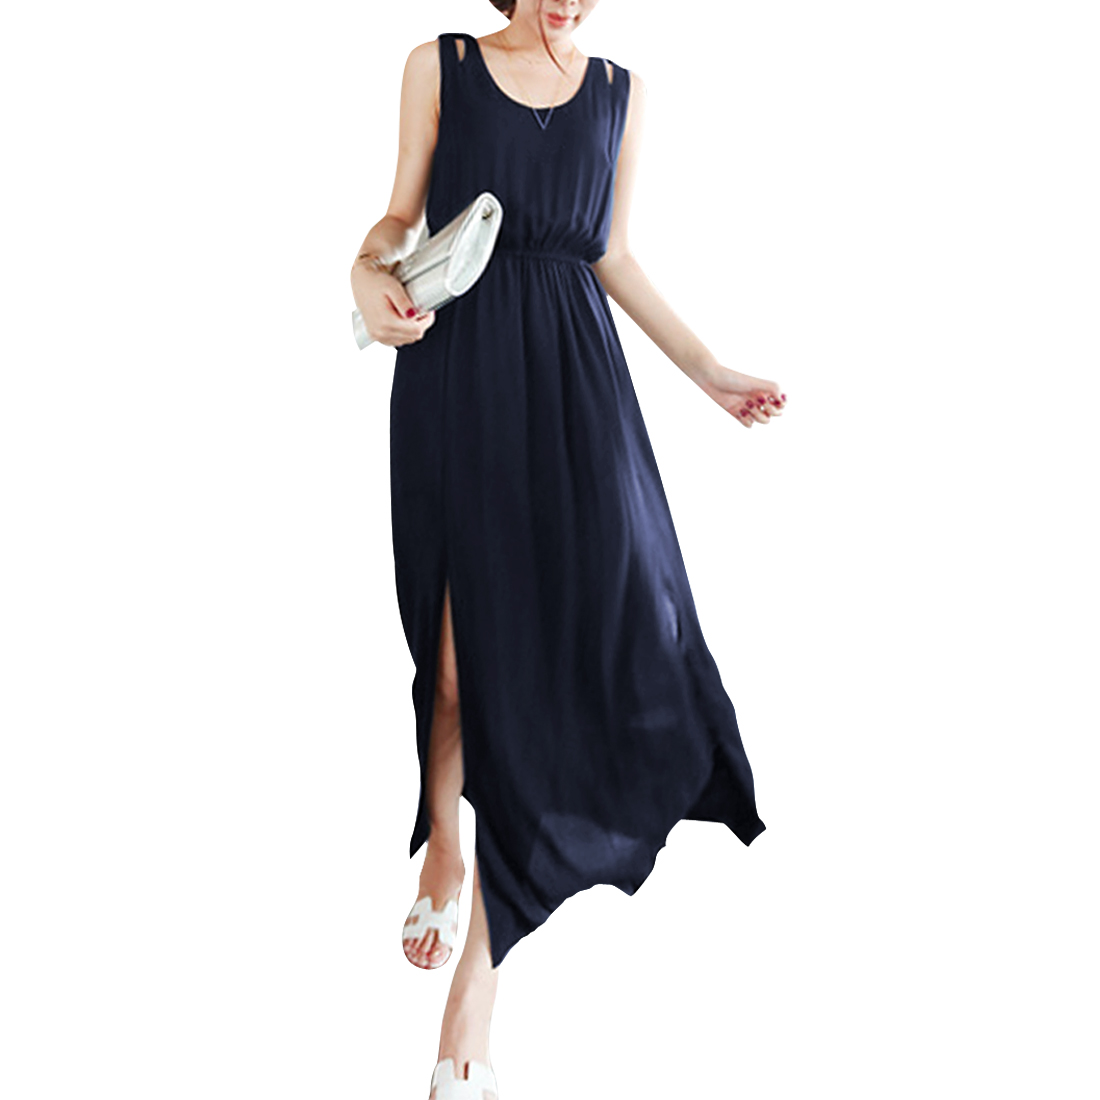 Women's Round Neck Sleeveless Navy Blue Elastic Waist S Chiffon Dress